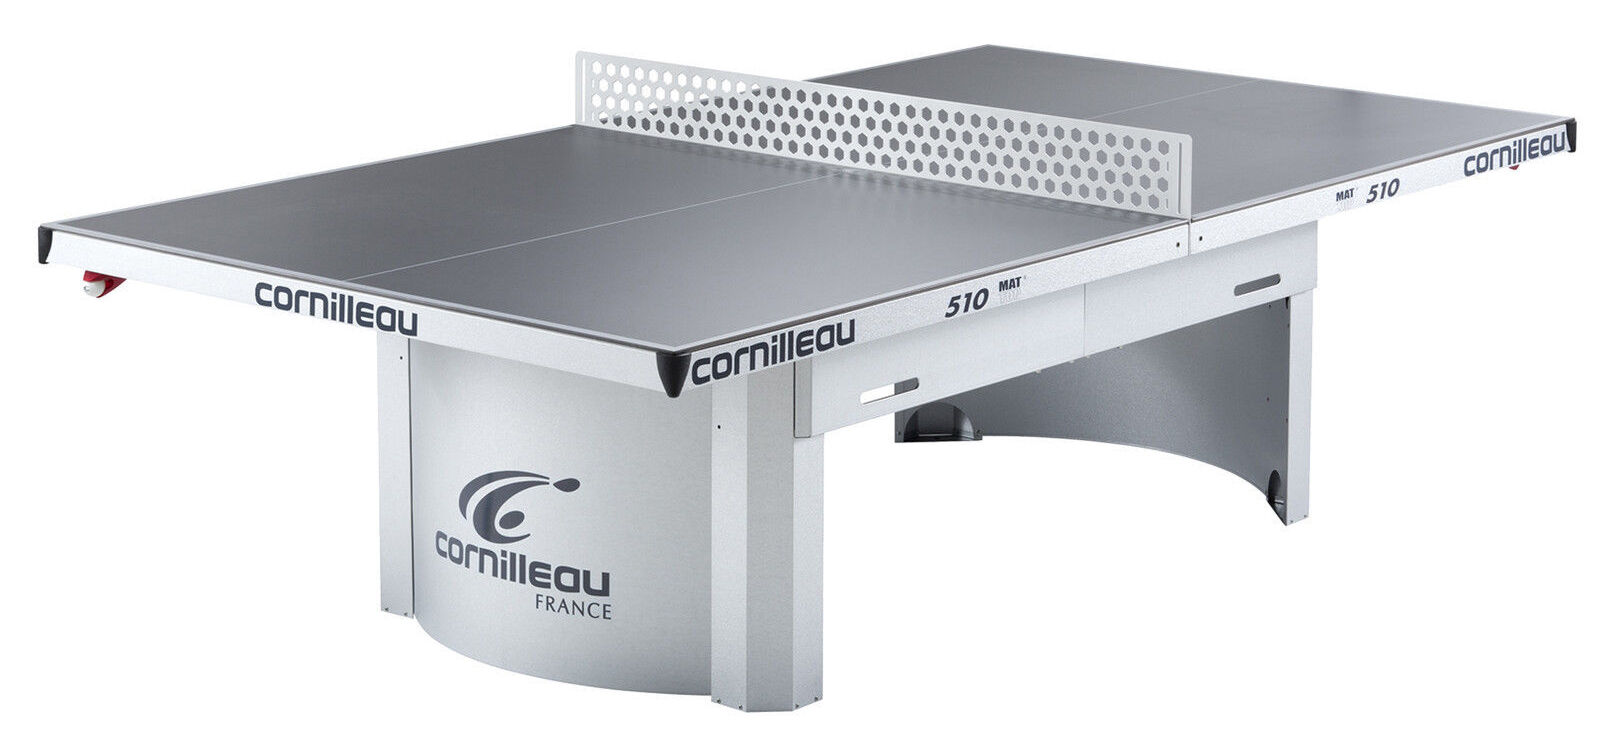 Ping pong table top - Cornilleau Pro 510 Slate Outdoor Ping Pong Table